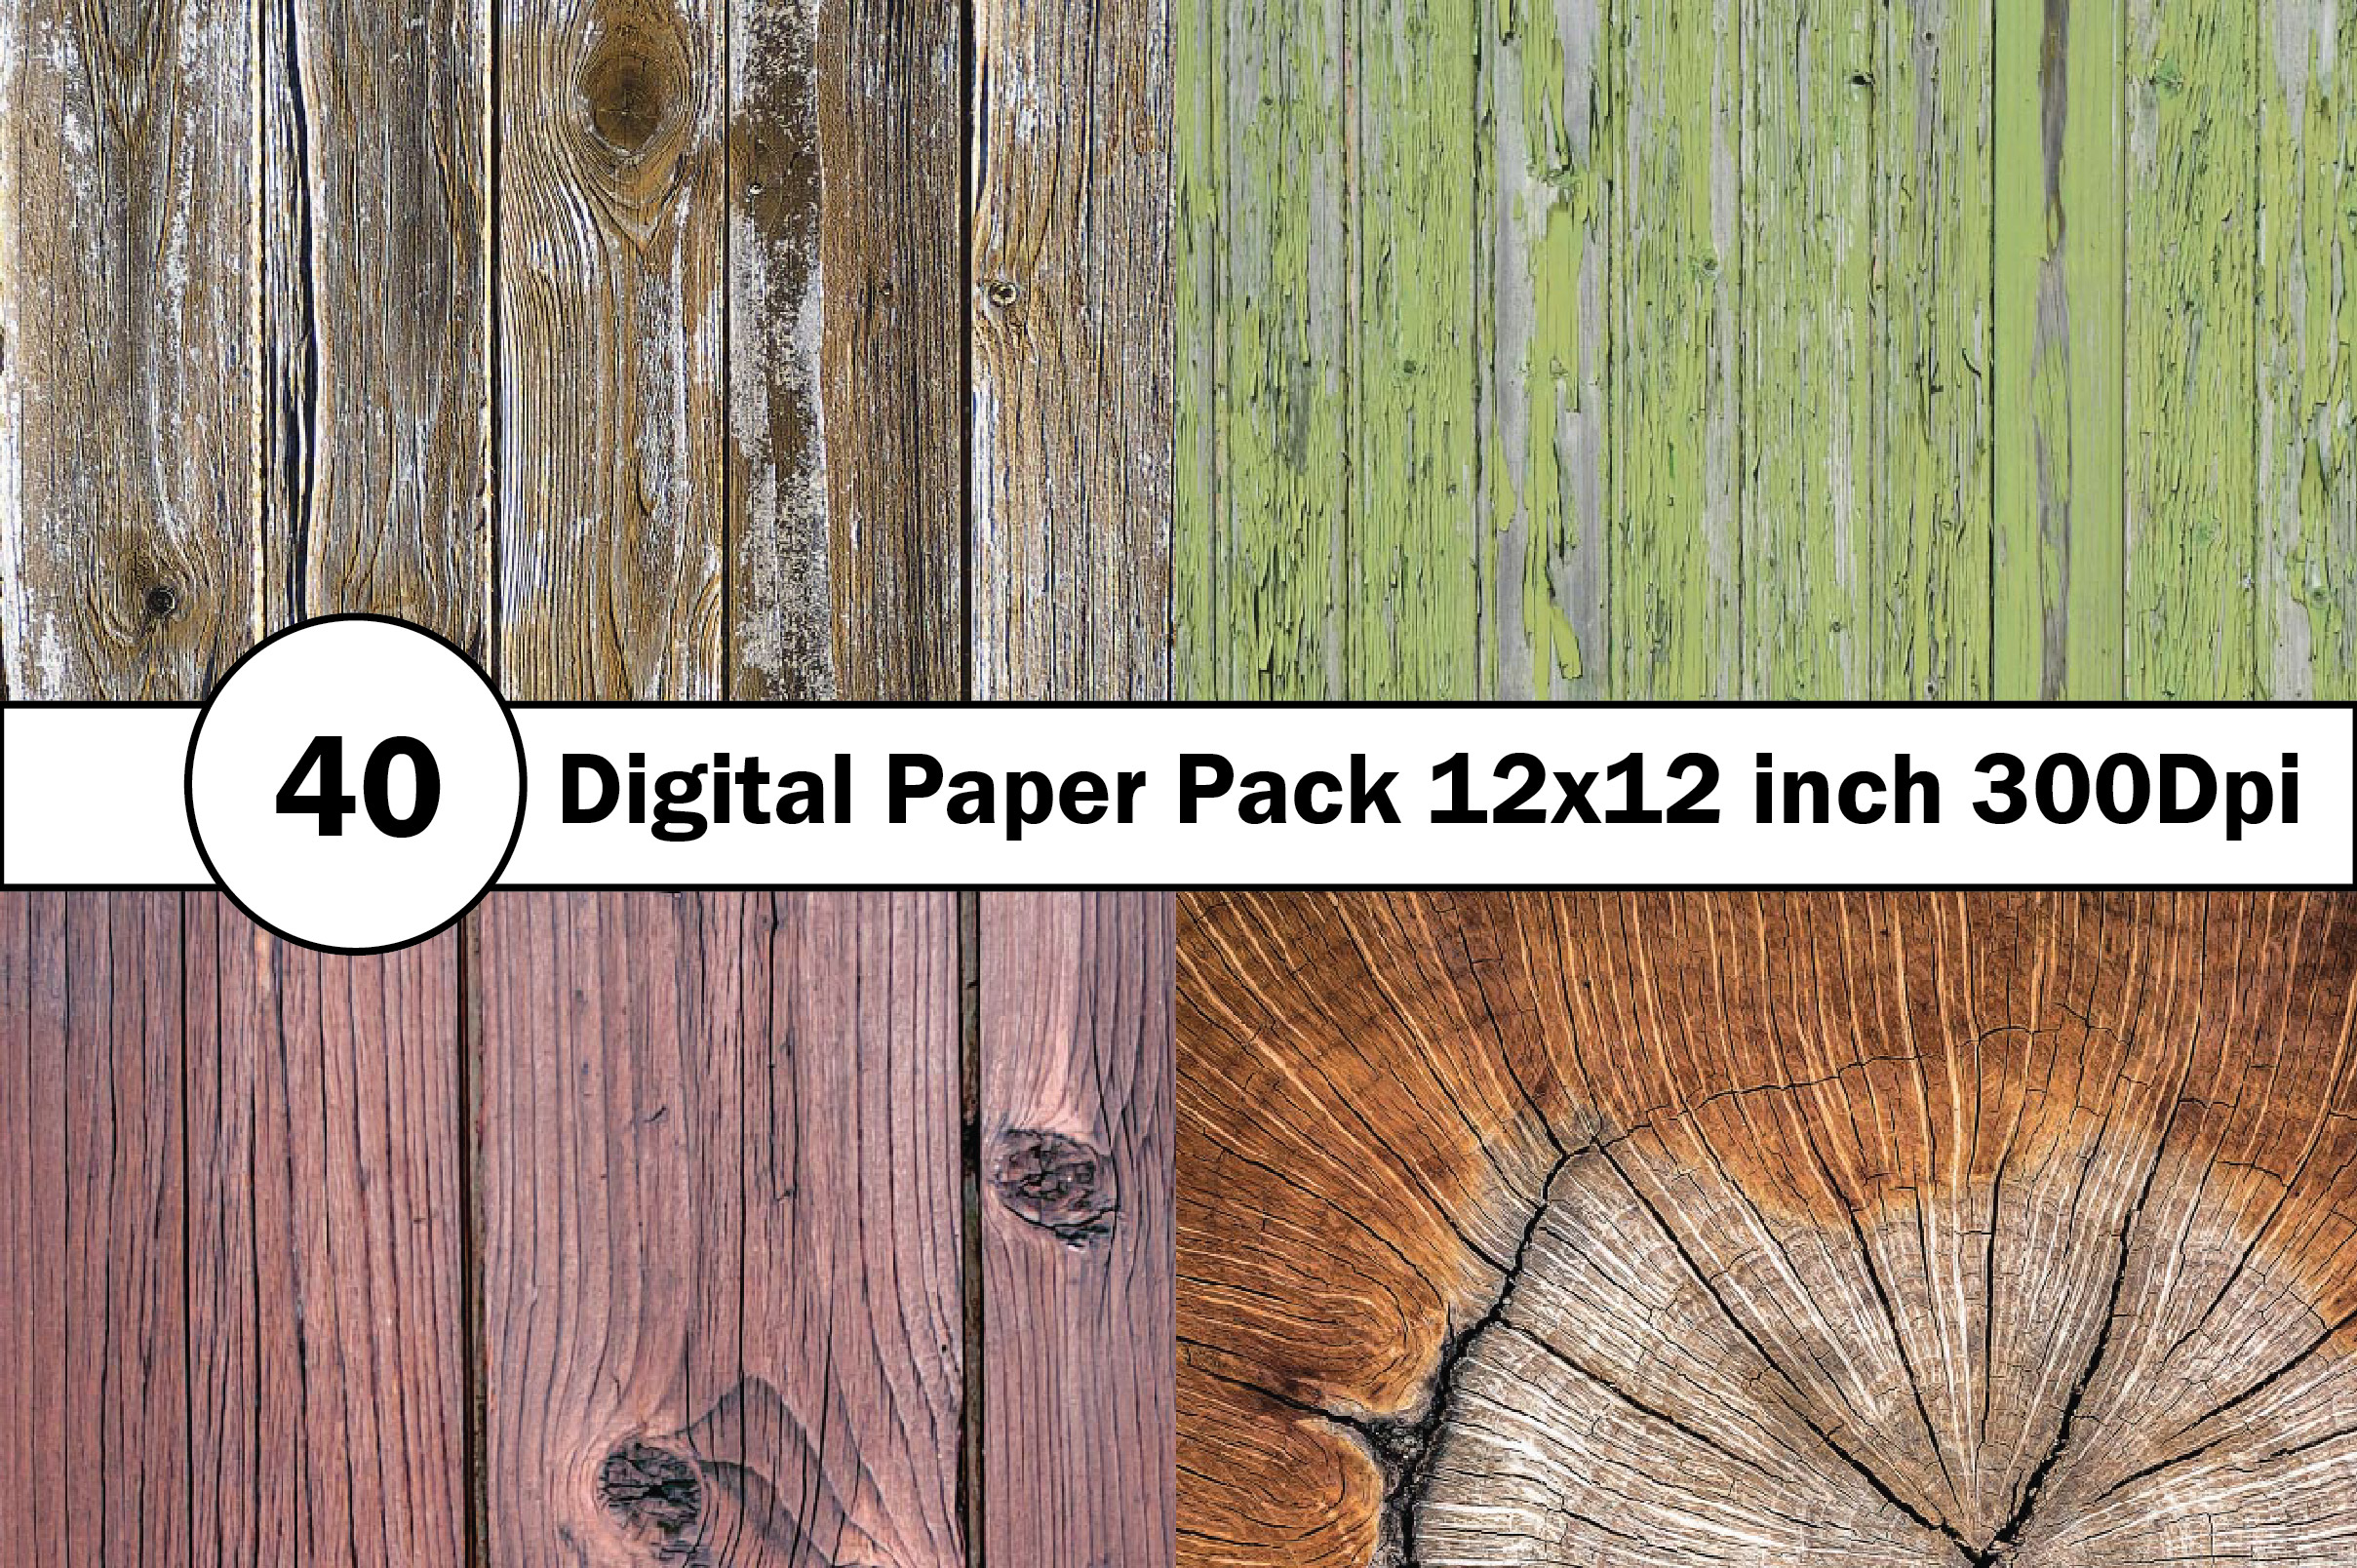 40 Digital Paper Pack 12x12 inch 300 Dpi example image 10